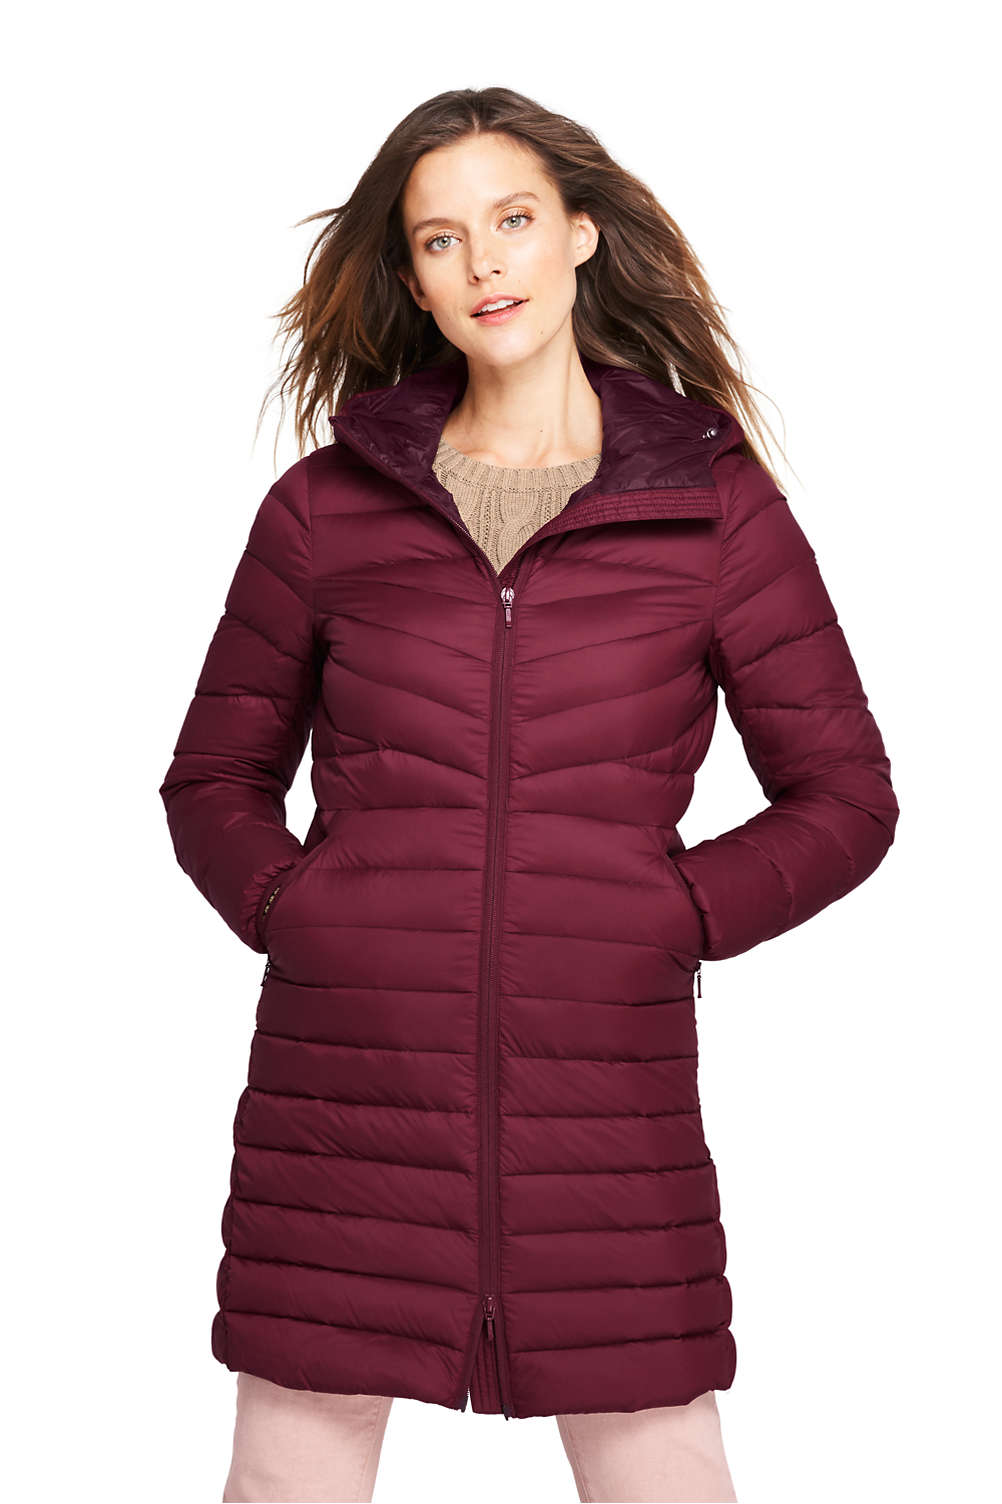 d5f61781dcd5 Women s Ultralight Packable Long Down Coat from Lands  End